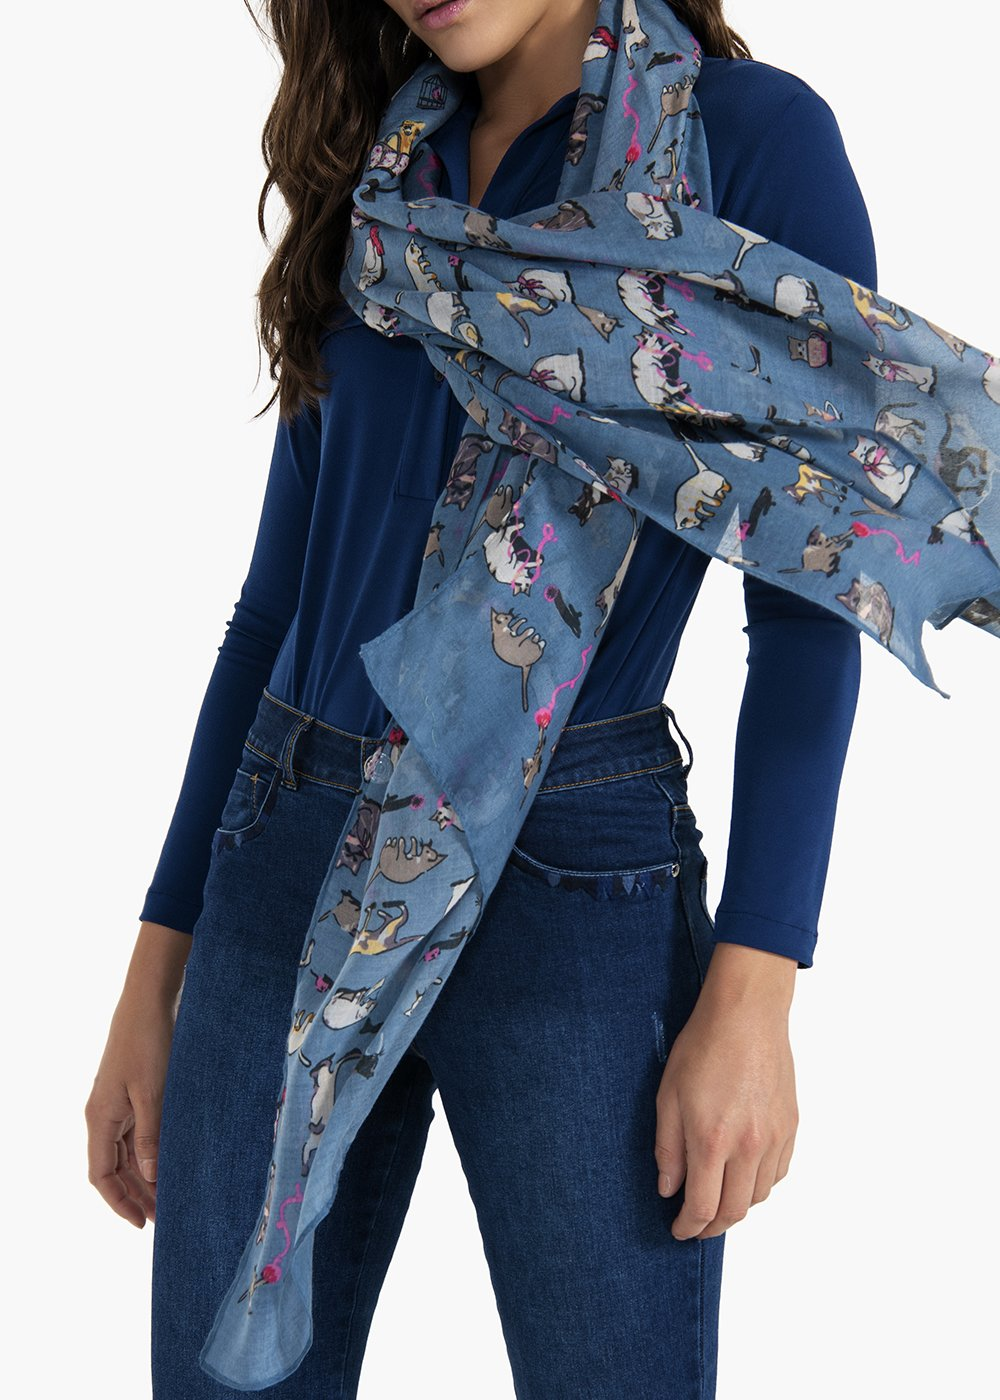 Shany scarf with cat pattern - Acciaio / Fantasia - Woman